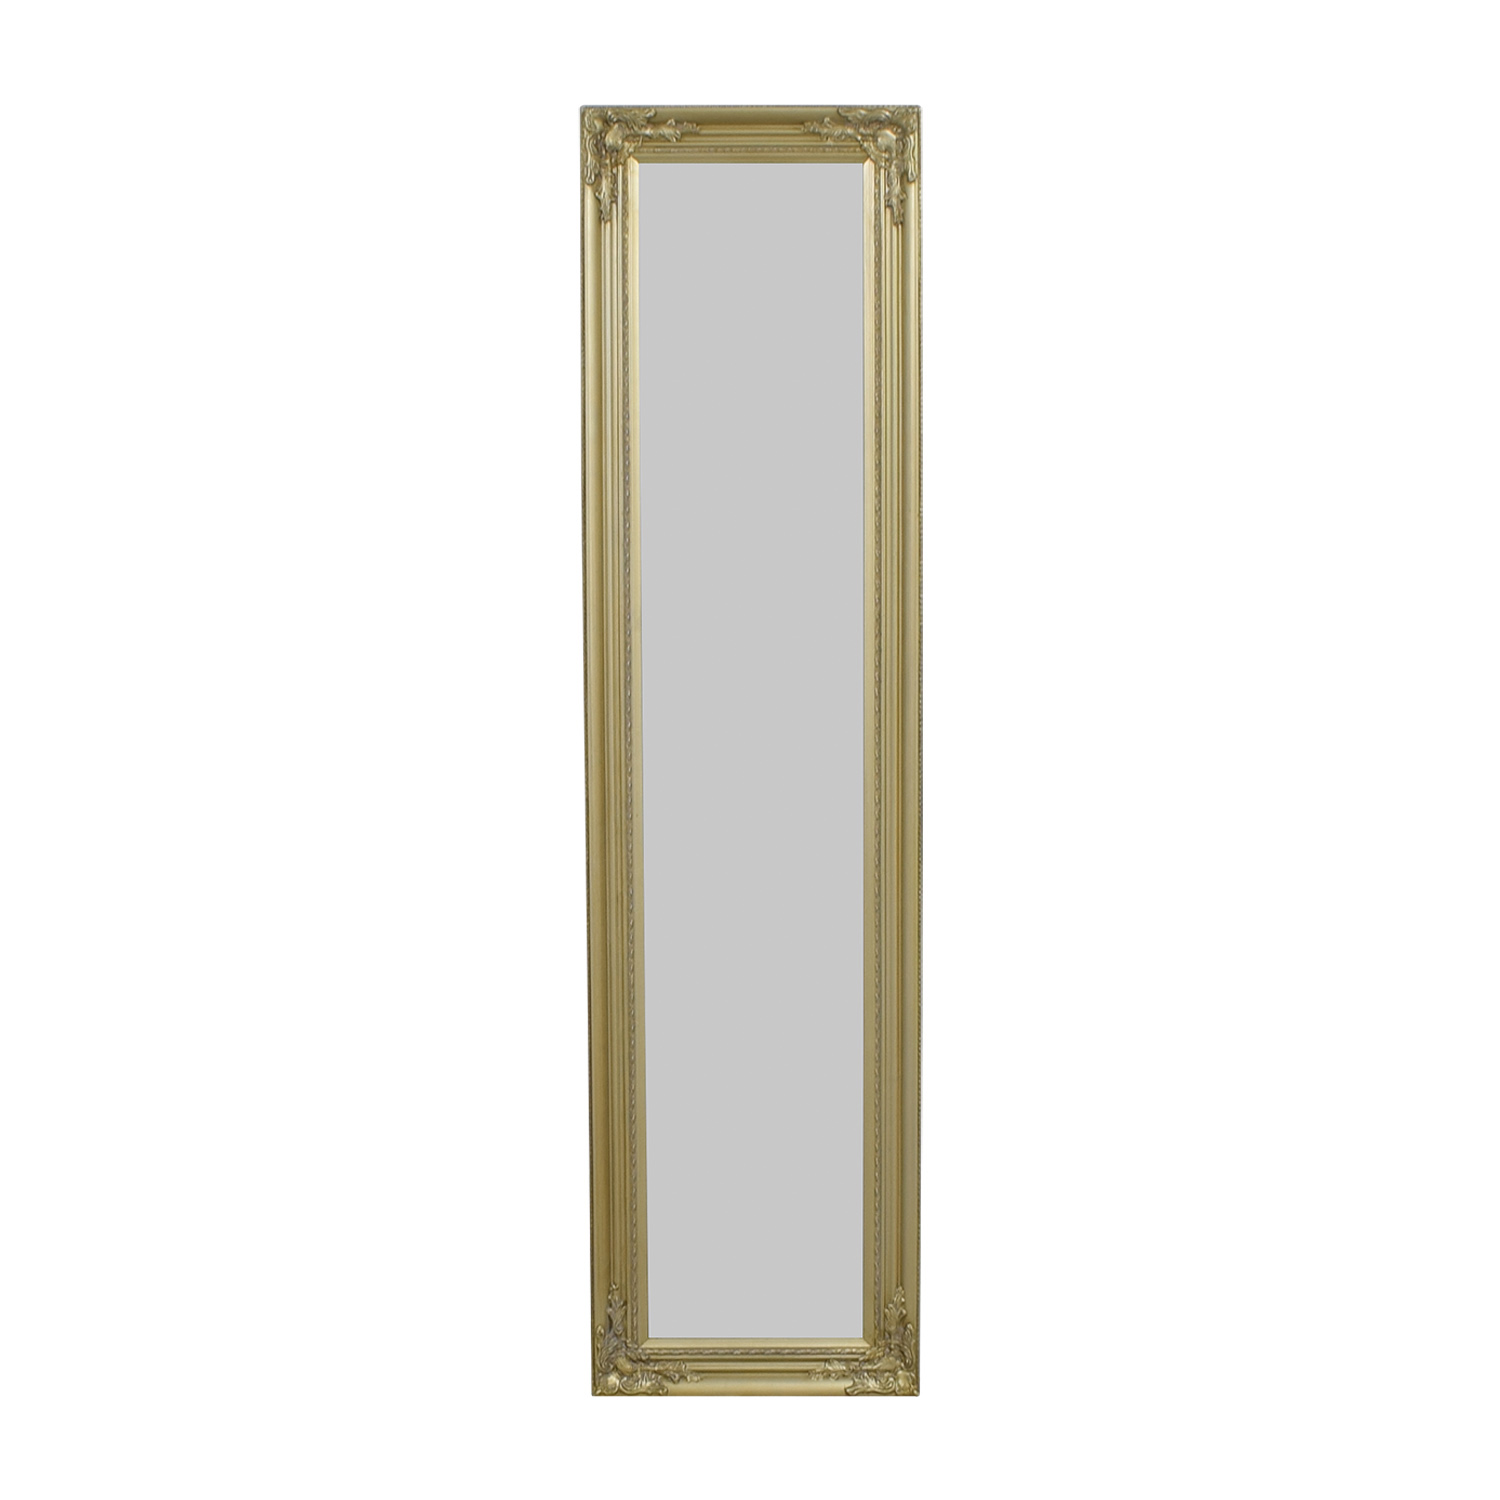 48 off full length ornate gold mirror decor for Mirror o mirror